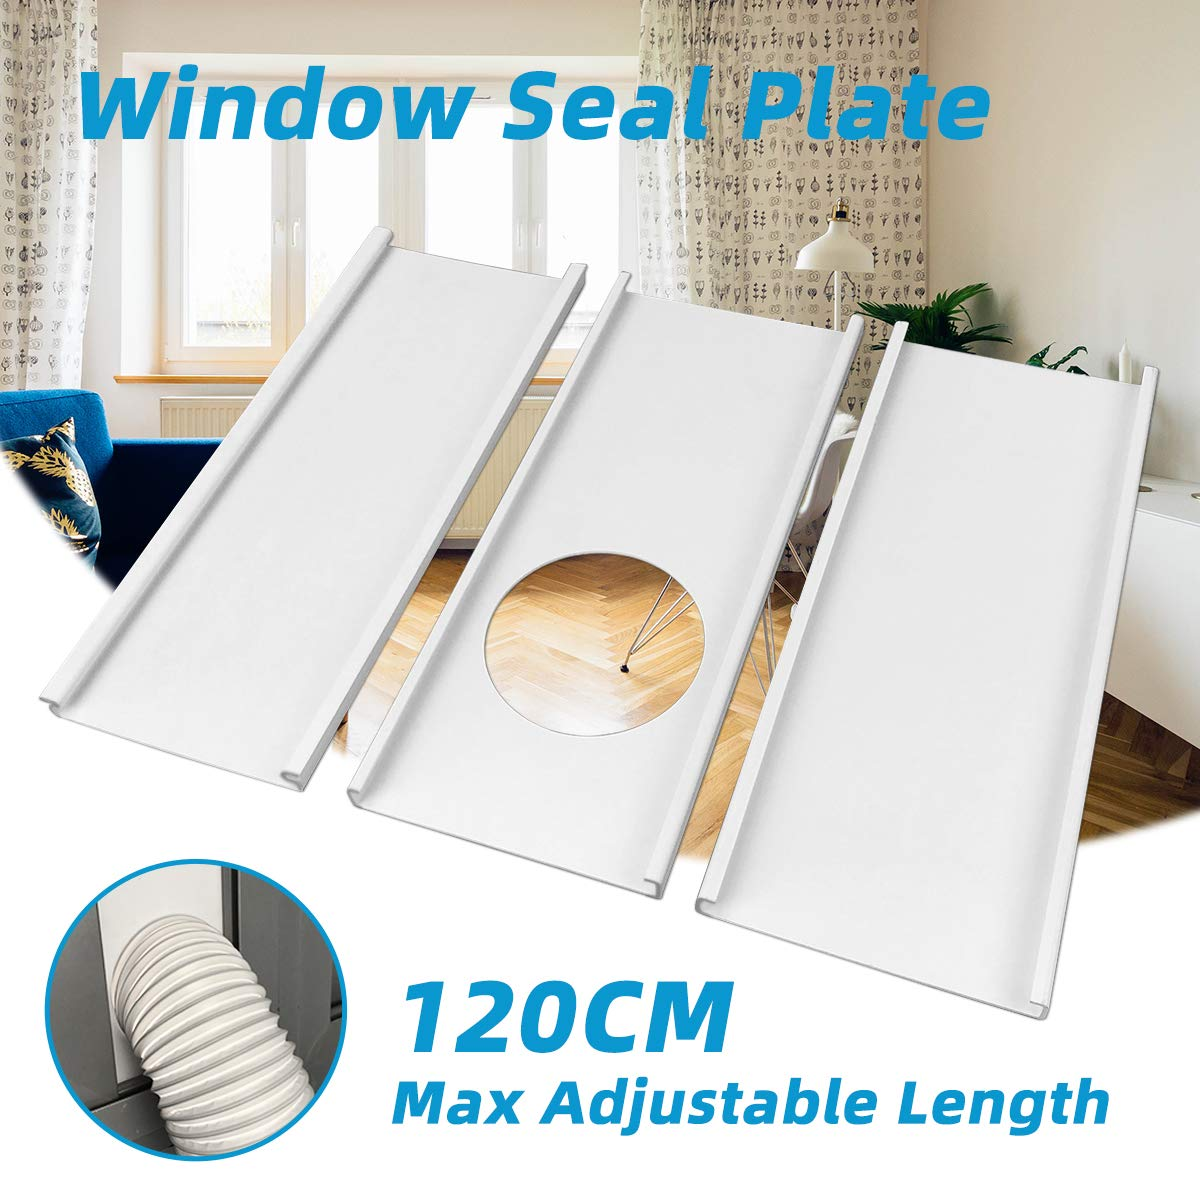 "Jeacent Portable Air Conditioner Window Seal Plates Kit, Plastic AC Vent Kit for Sliding Glass Doors and Windows, Adjustable Length Panels for Exhaust Hose of 5"" Diameter"